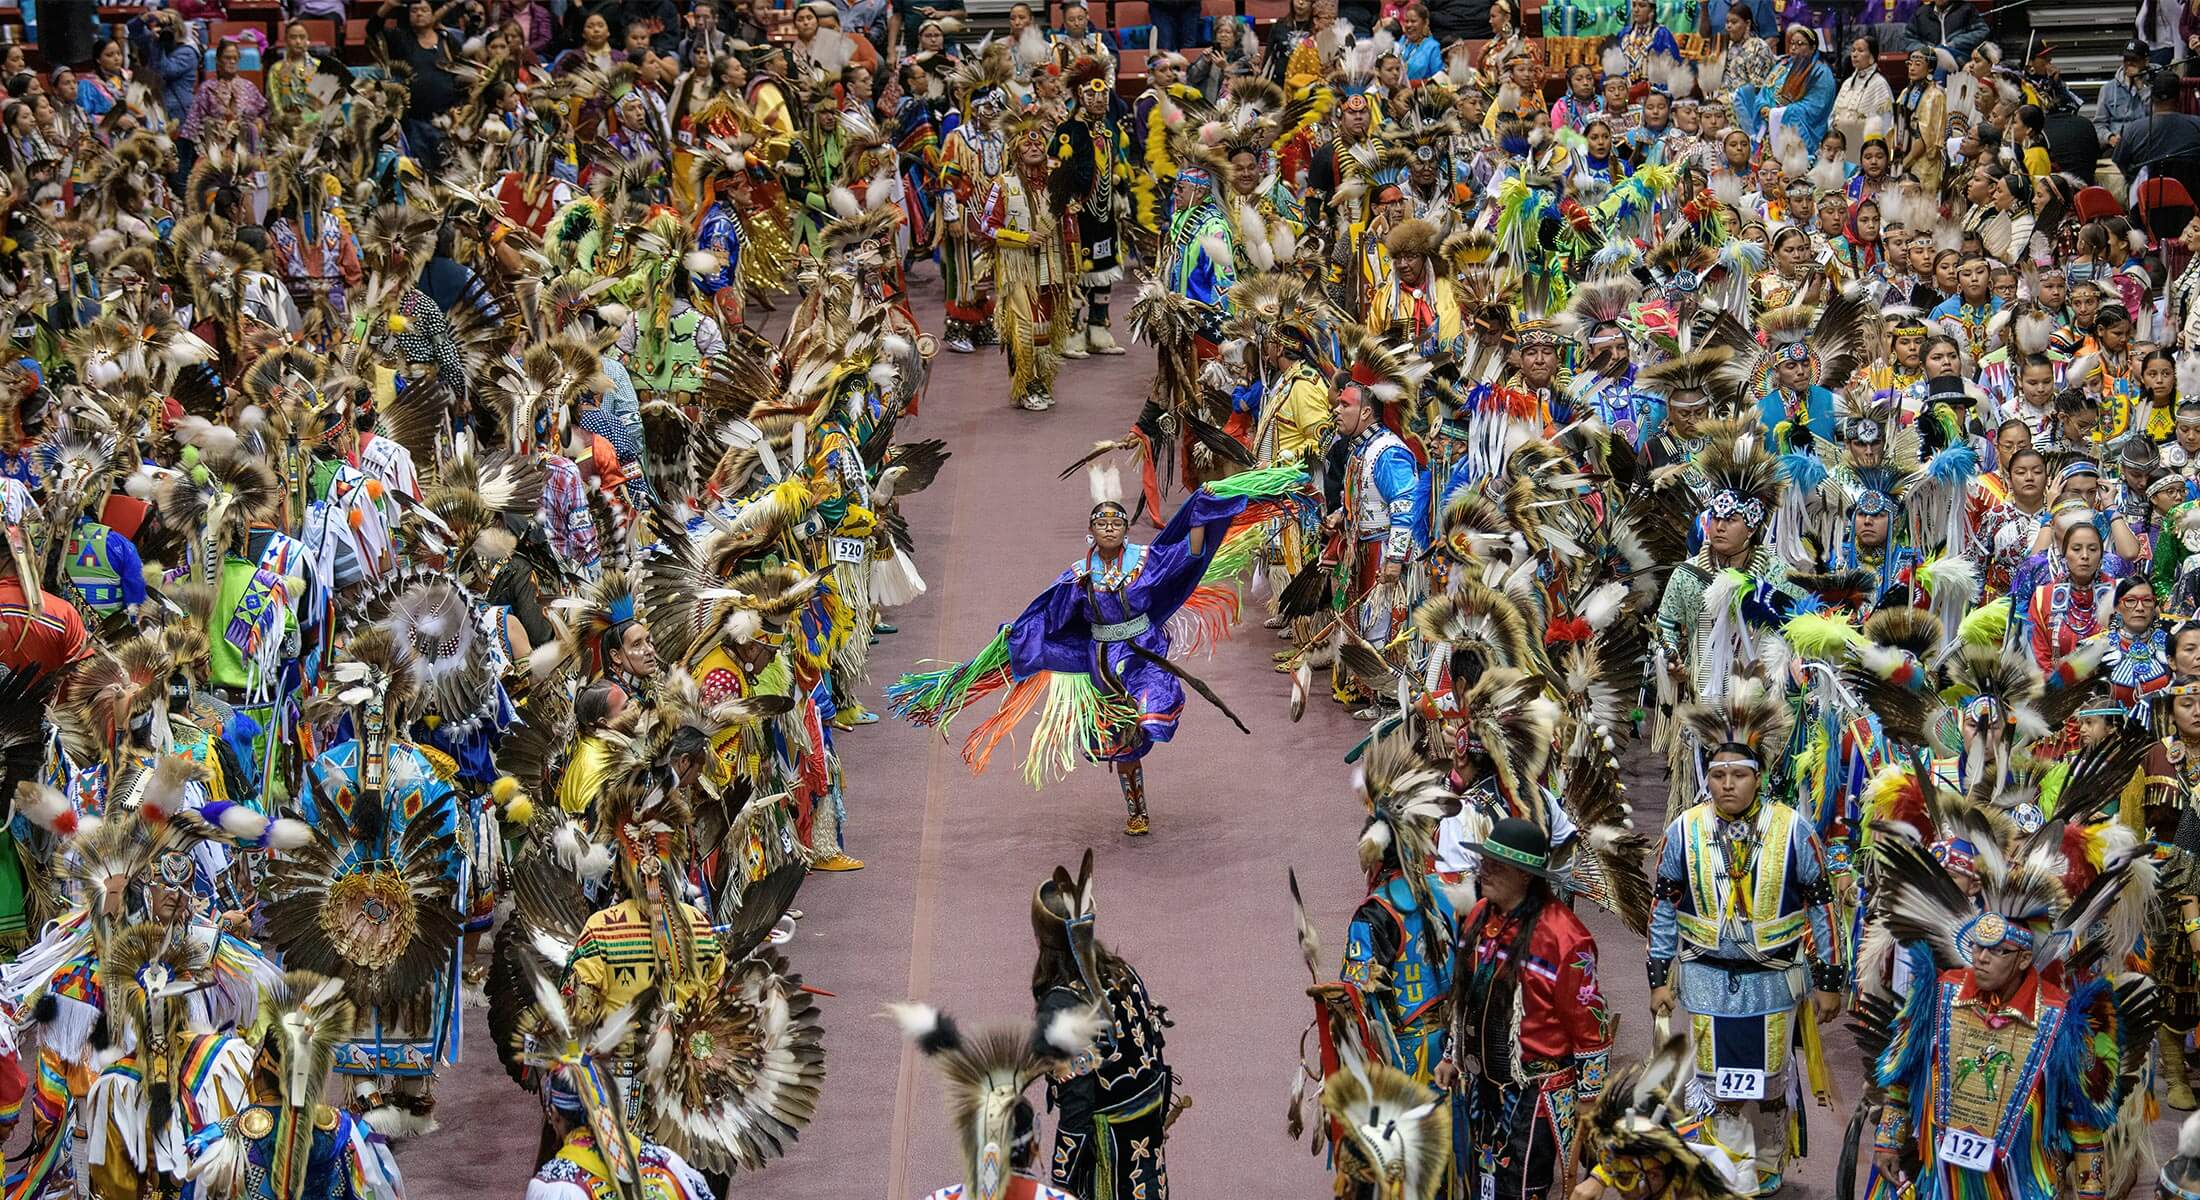 Dancers performing at the Black Hills Powwow in Rapid City